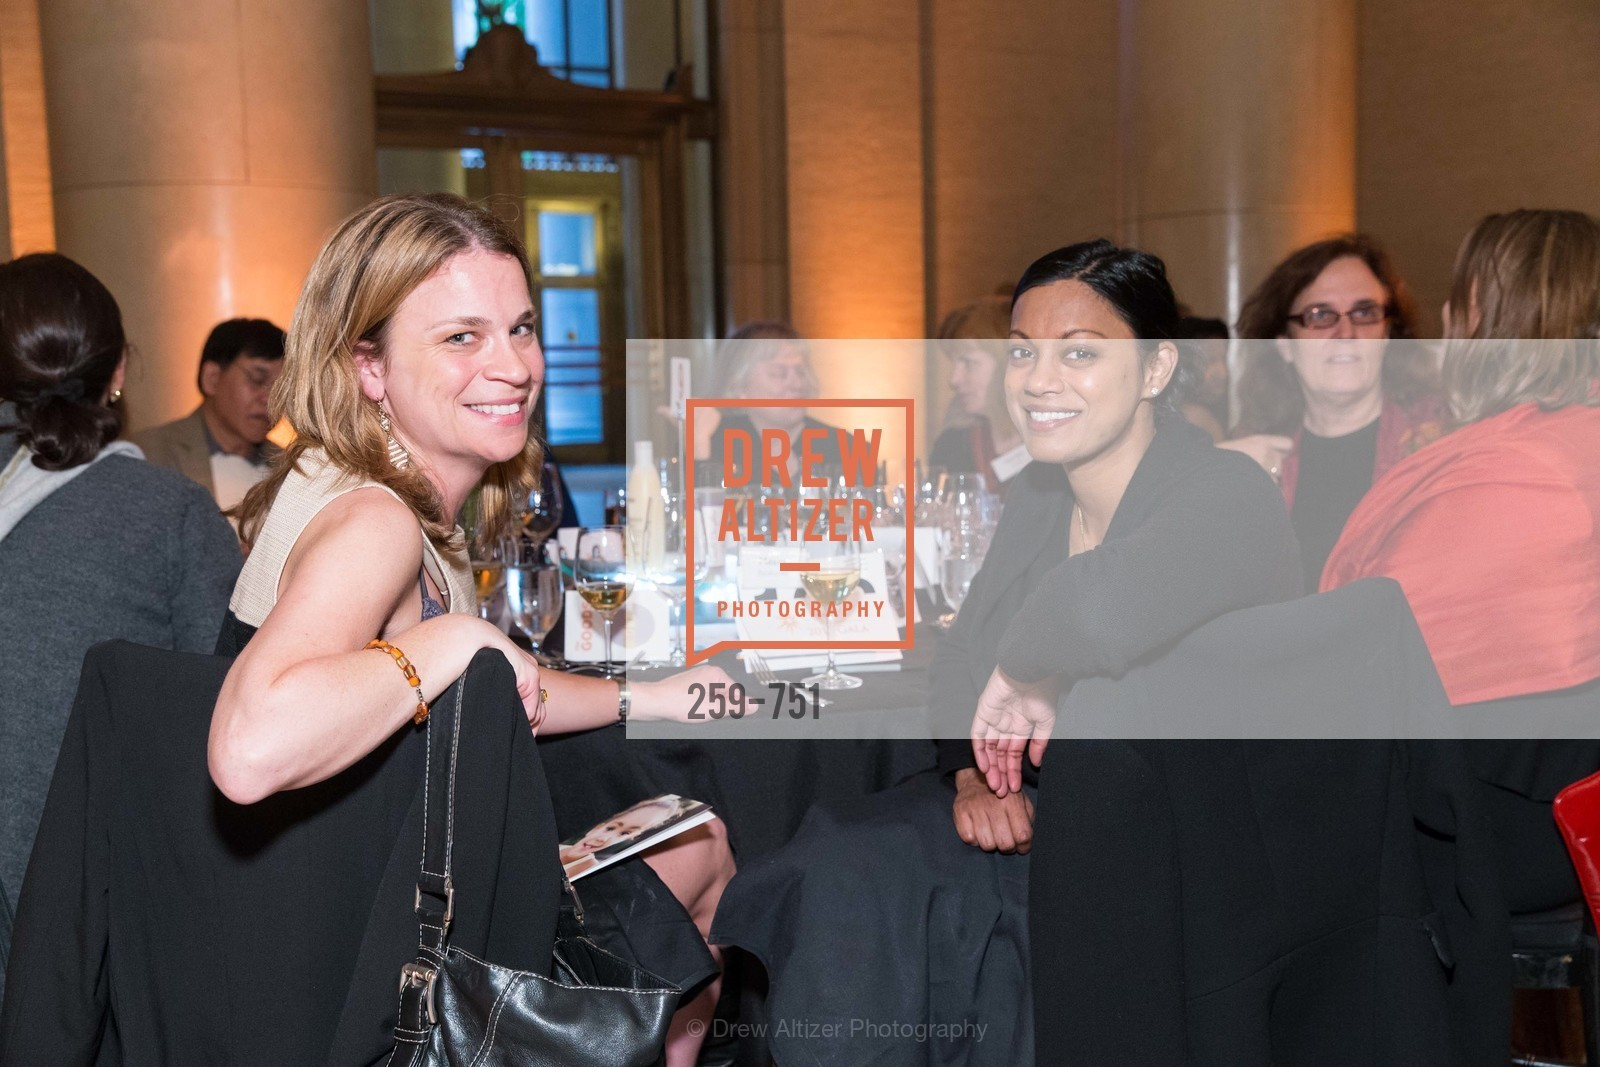 Anne Boyd Rabkin, Meera Balakumar, CENTER FOR ENVIRONMENTAL HEALTH (CEH) 2015 Gala, US, May 28th, 2015,Drew Altizer, Drew Altizer Photography, full-service agency, private events, San Francisco photographer, photographer california